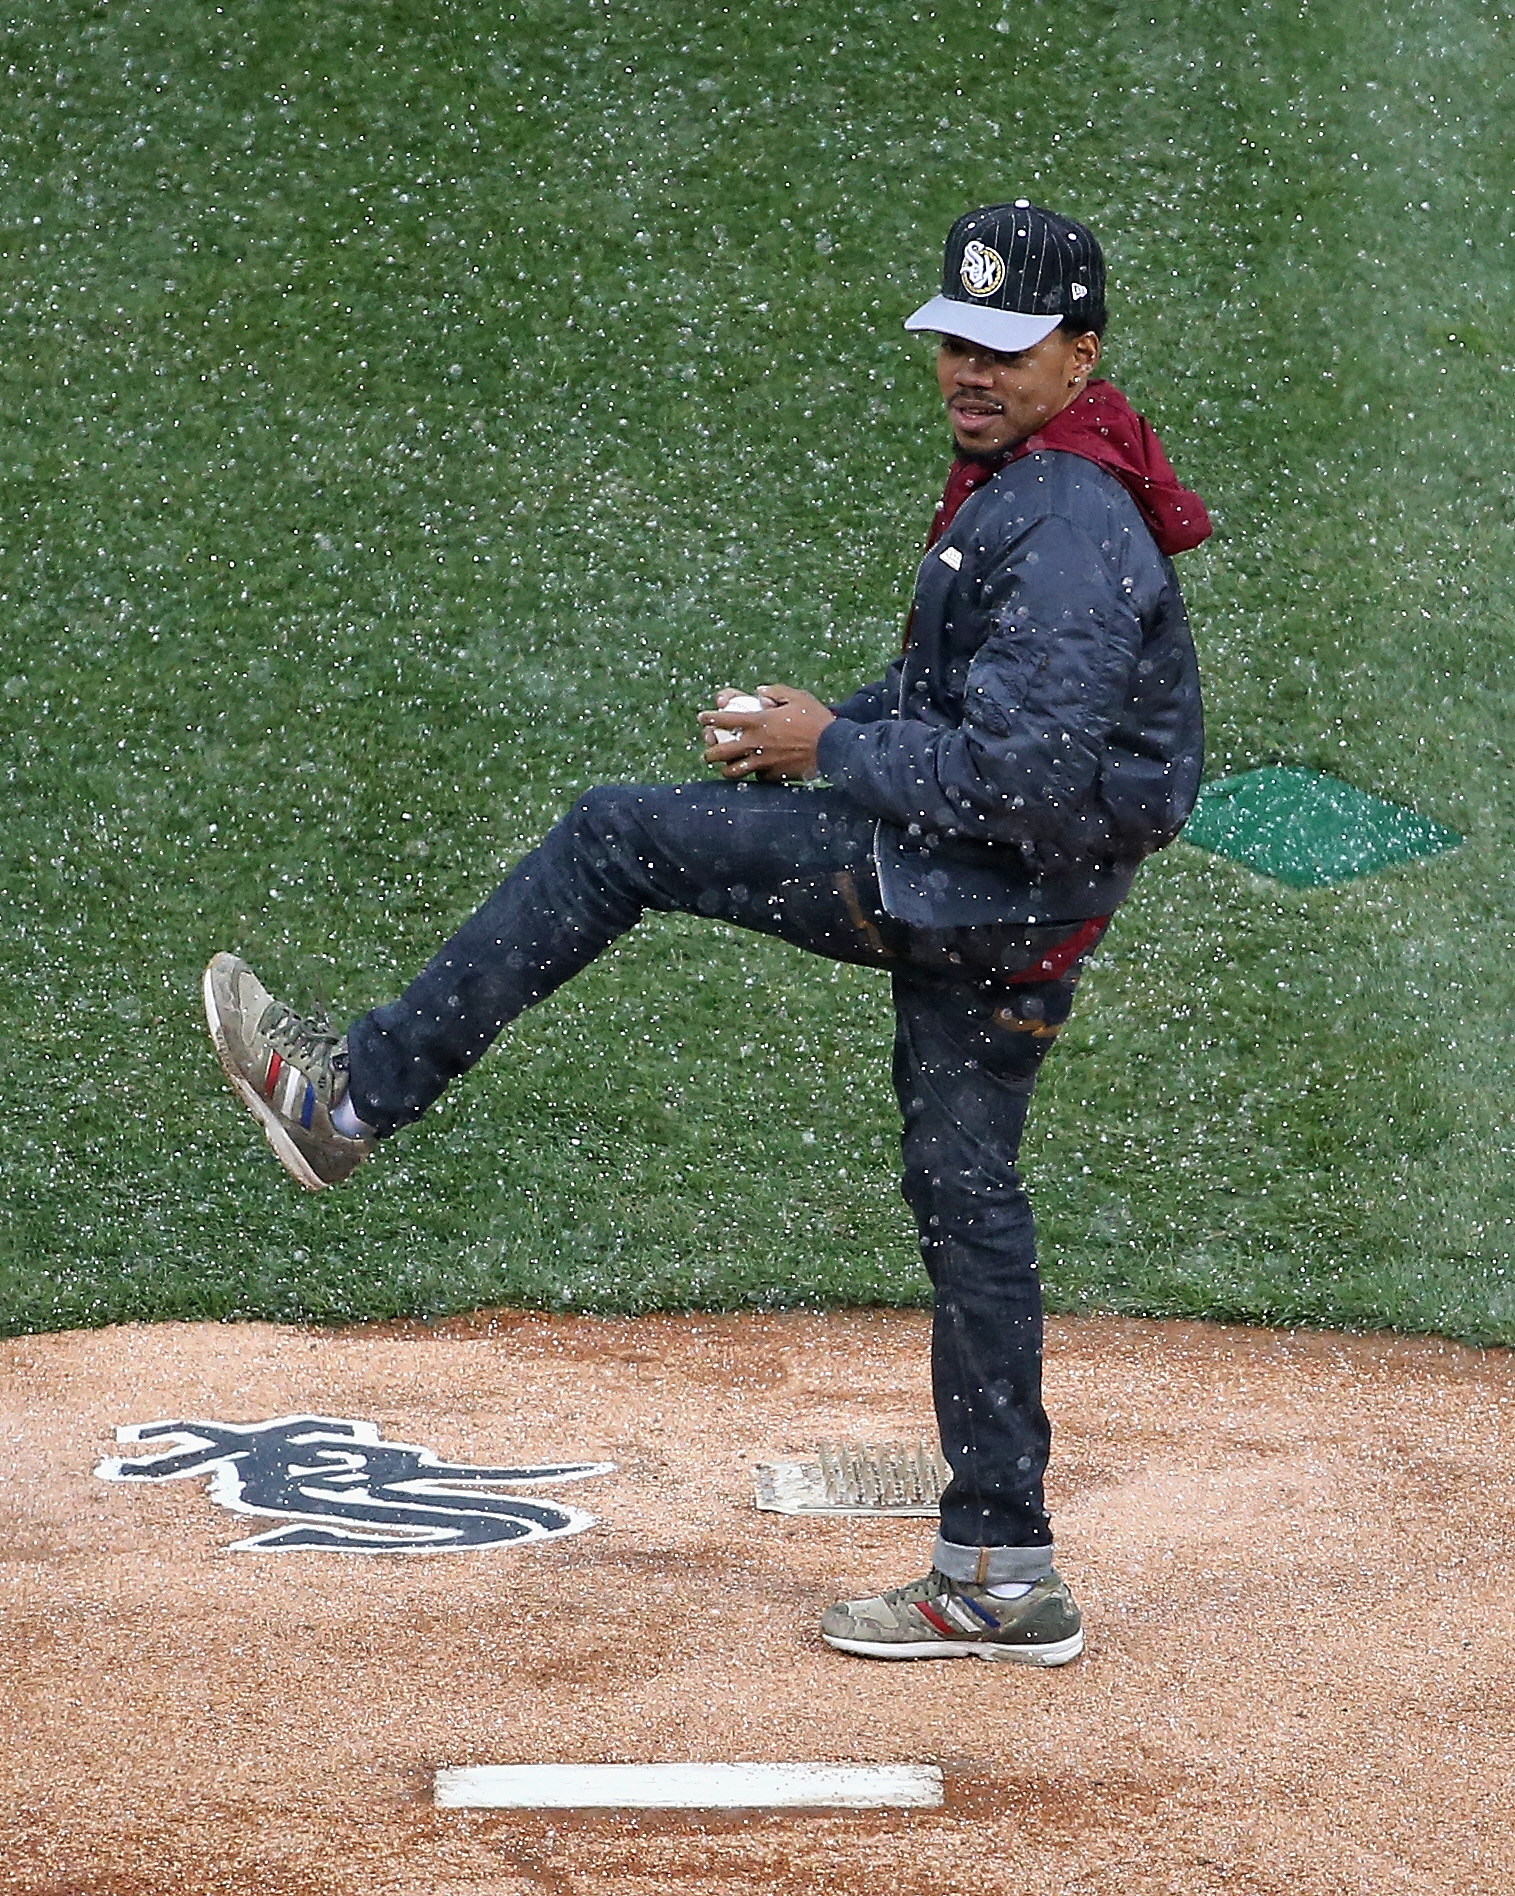 Chance the Rapper on Opening Day